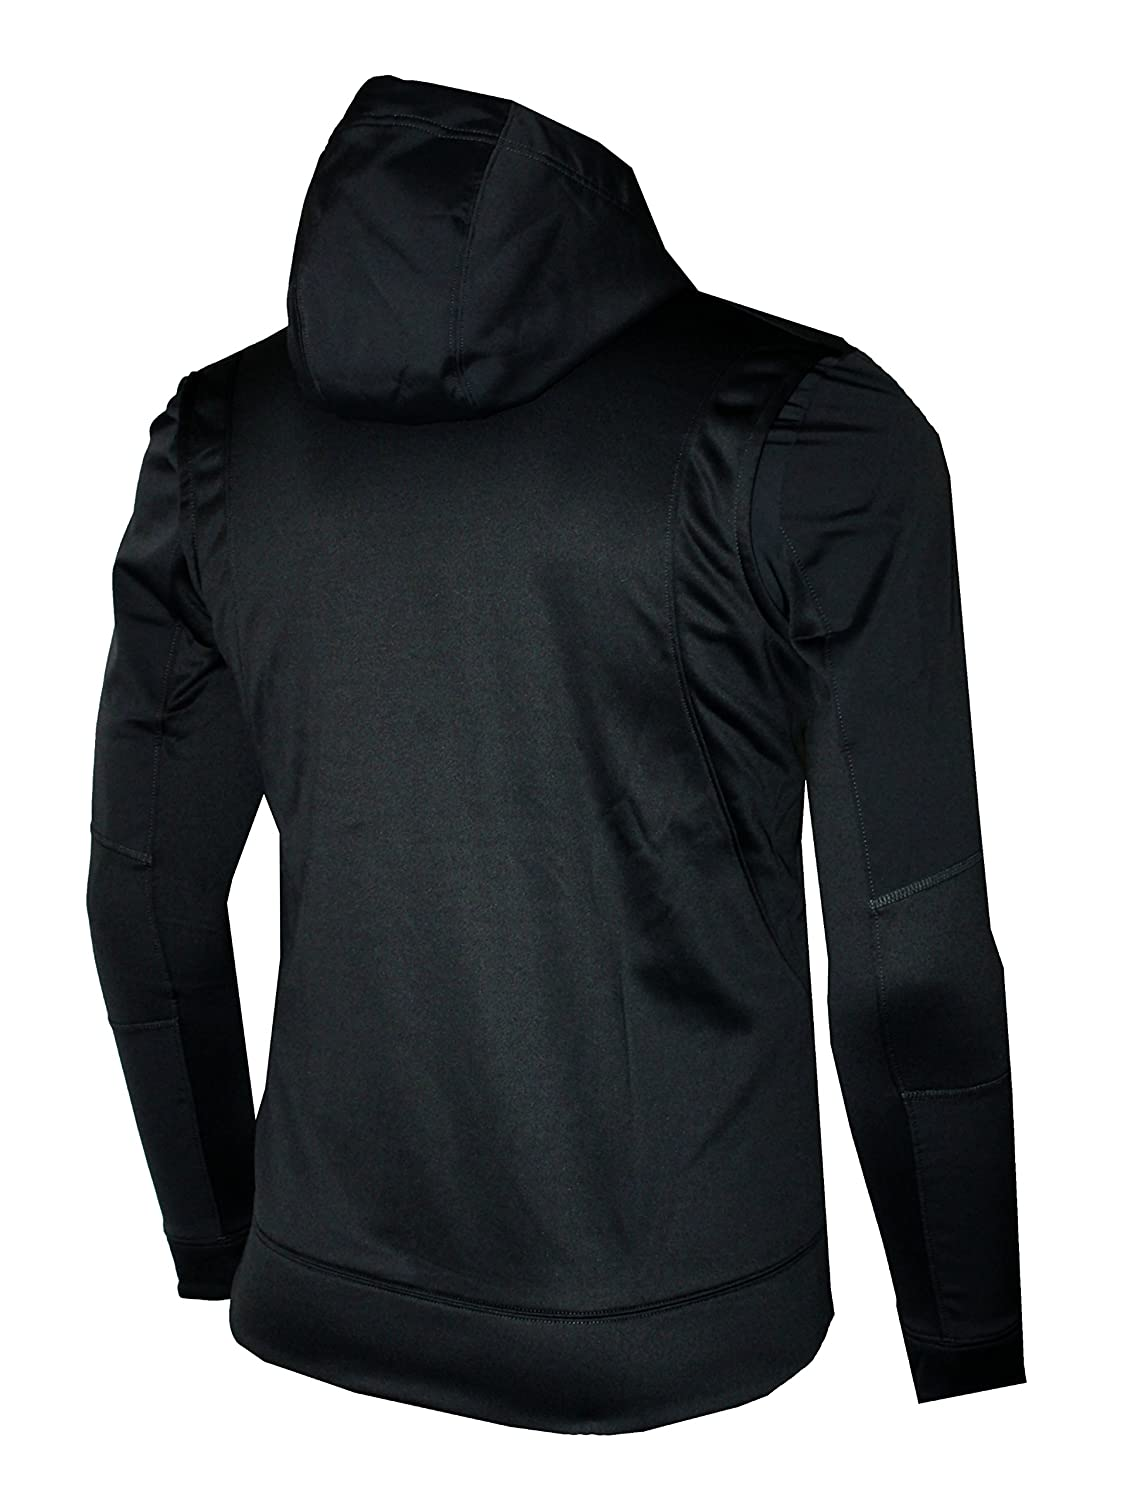 4afa2623 NIKE Therma Sphere Kobe Hyper Elite Men's Full-Zip Basketball Hoodie, Black  at Amazon Men's Clothing store: